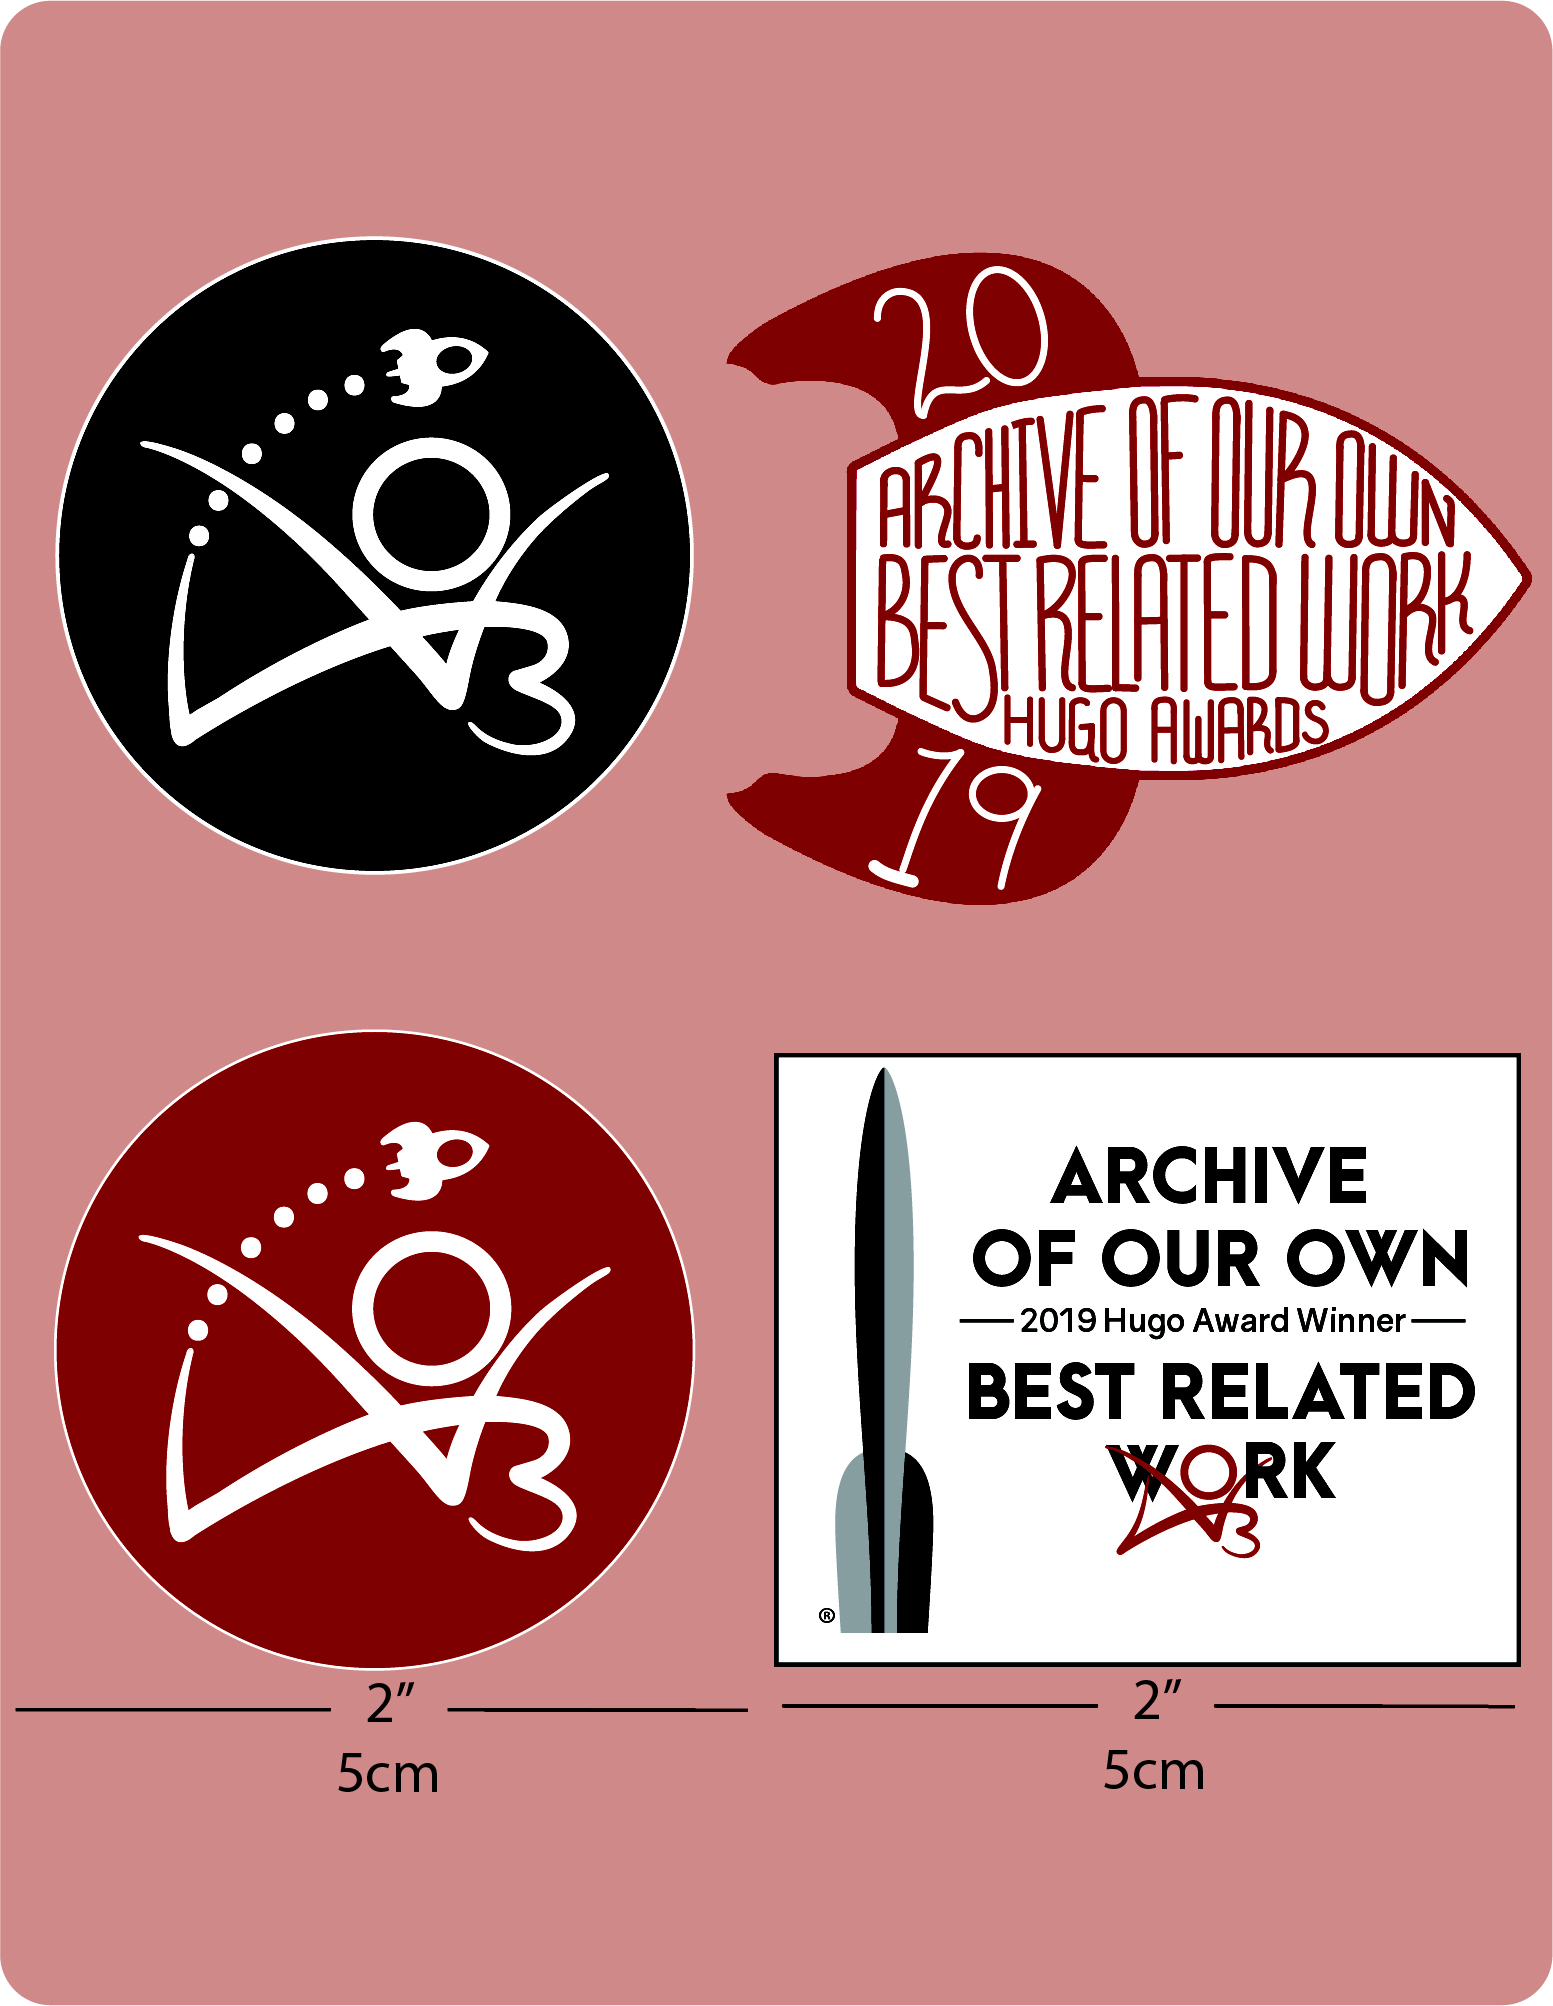 "Hugo Award Sticker Set (contains four stickers measuring 5cm). The first two are circular, with a small rocket flying above the AO3 logo. (1) is red, and (2) is black. (3) A rectangle with the Hugo logo next to the words ""Archive of Our Own - 2019 Hugo Award Winner - Best Related Work."" and (4) a stylised rocket with the words ""Archive of Our Own, Best Related Work, Hugo Awards"" handwritten inside the body and the year ""2019"" on the rocket's fins."